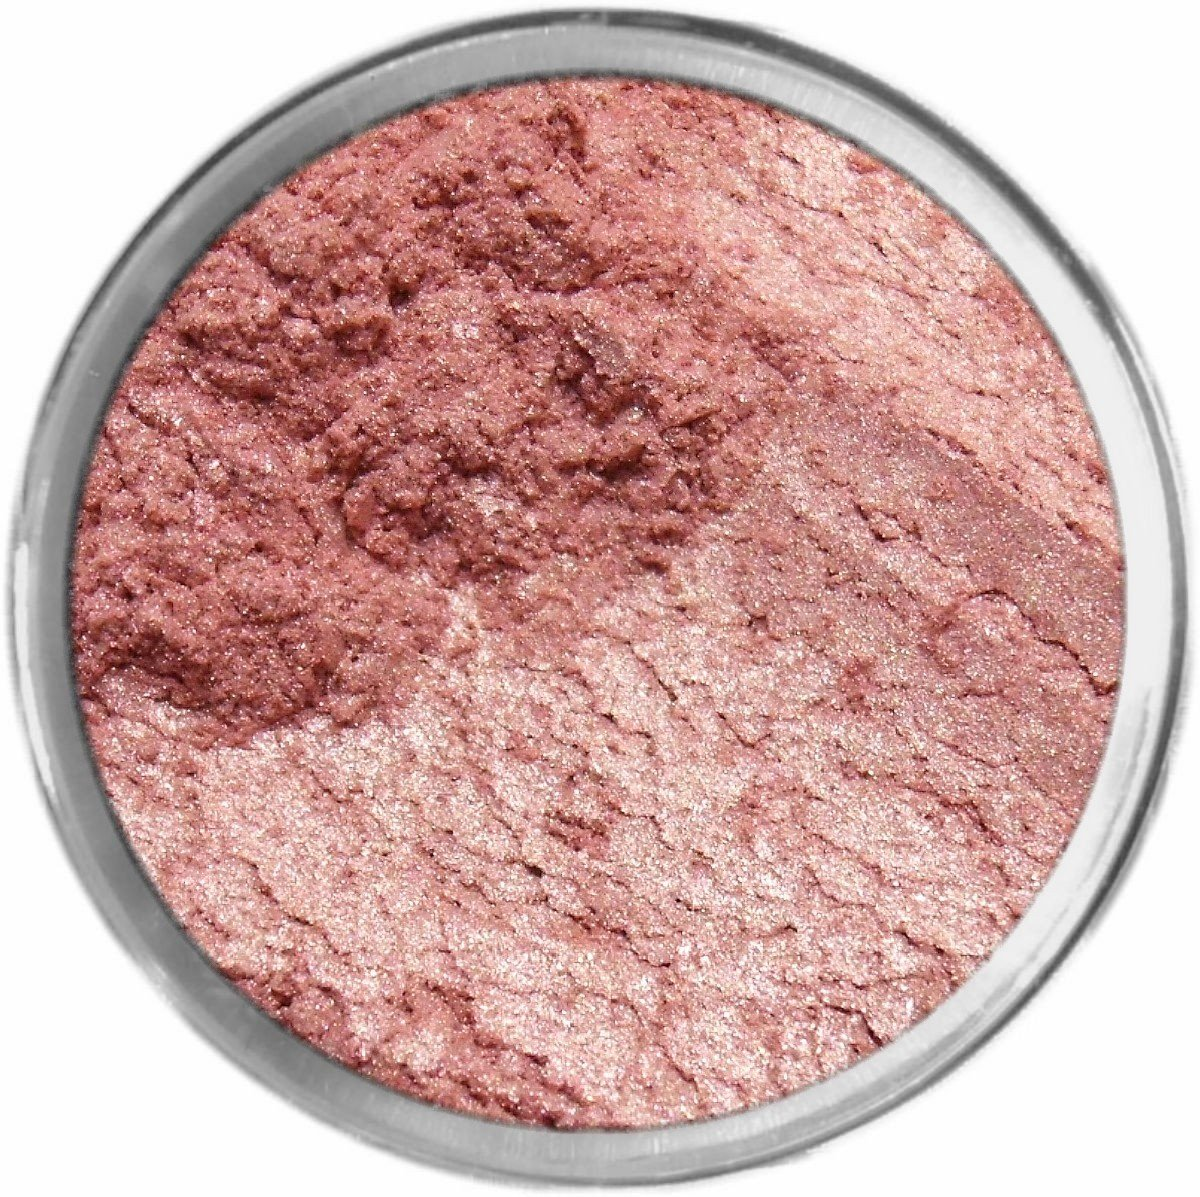 Milady Loose Powder Mineral Shimmer Multi Use Eyes Face Color Makeup Bare Earth Pigment Minerals Make Up Cosmetics By MAD Minerals Cruelty Free - 10 Gram Sized Sifter Jar